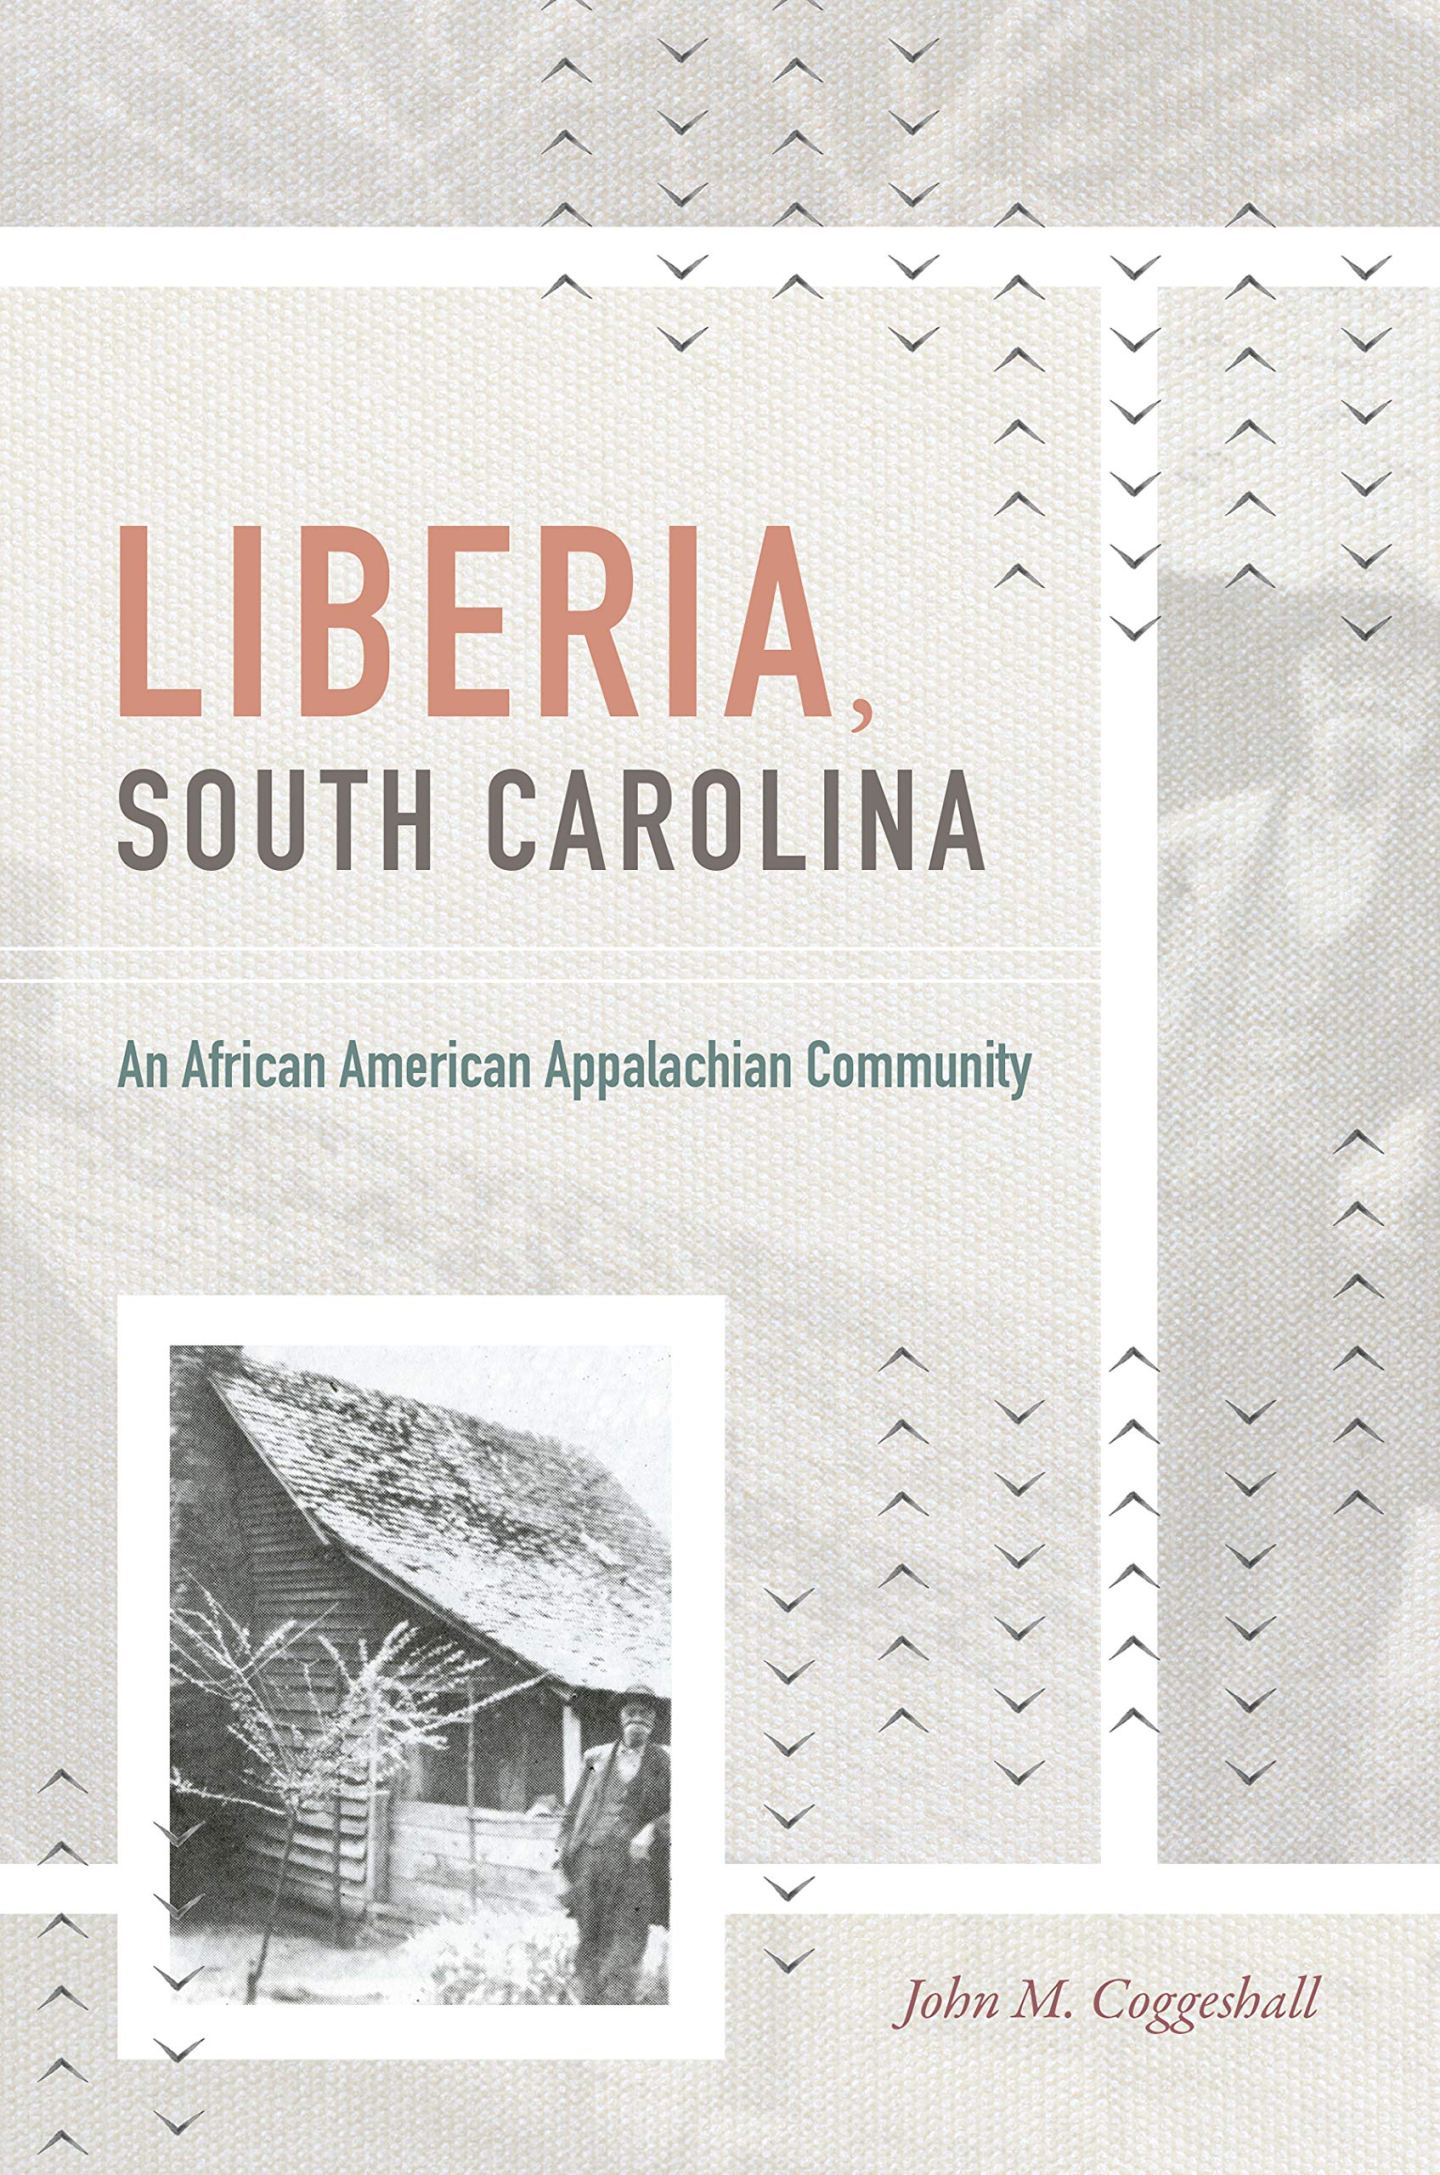 Black in Appalachia Heritage Books to Add To Your Coffee  A close up of text on a white background  Liberia South Carolina An African American Appalachian Community